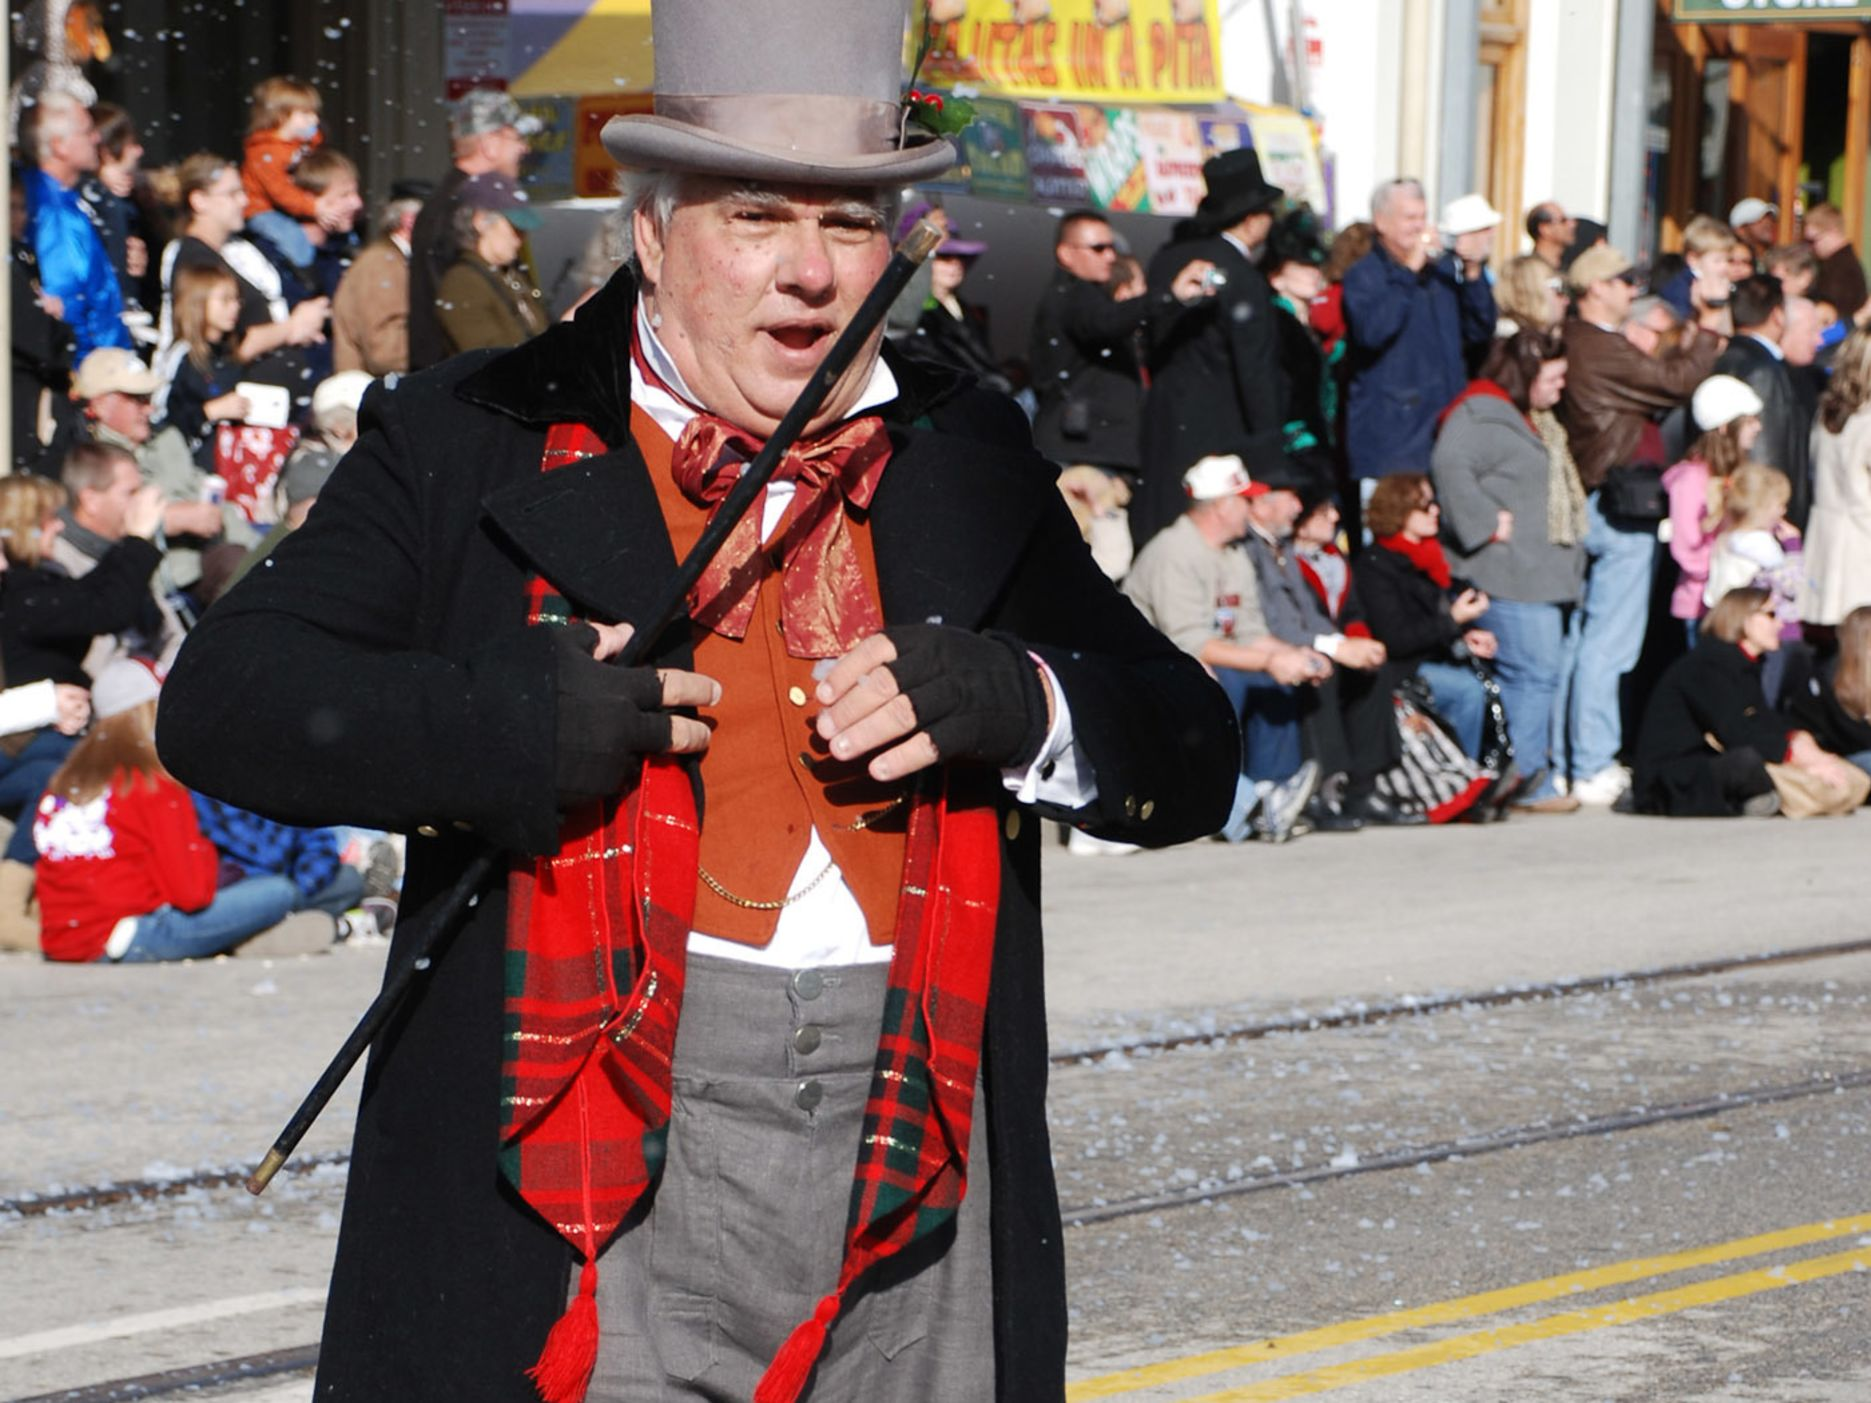 Dickens character in parade df2be8